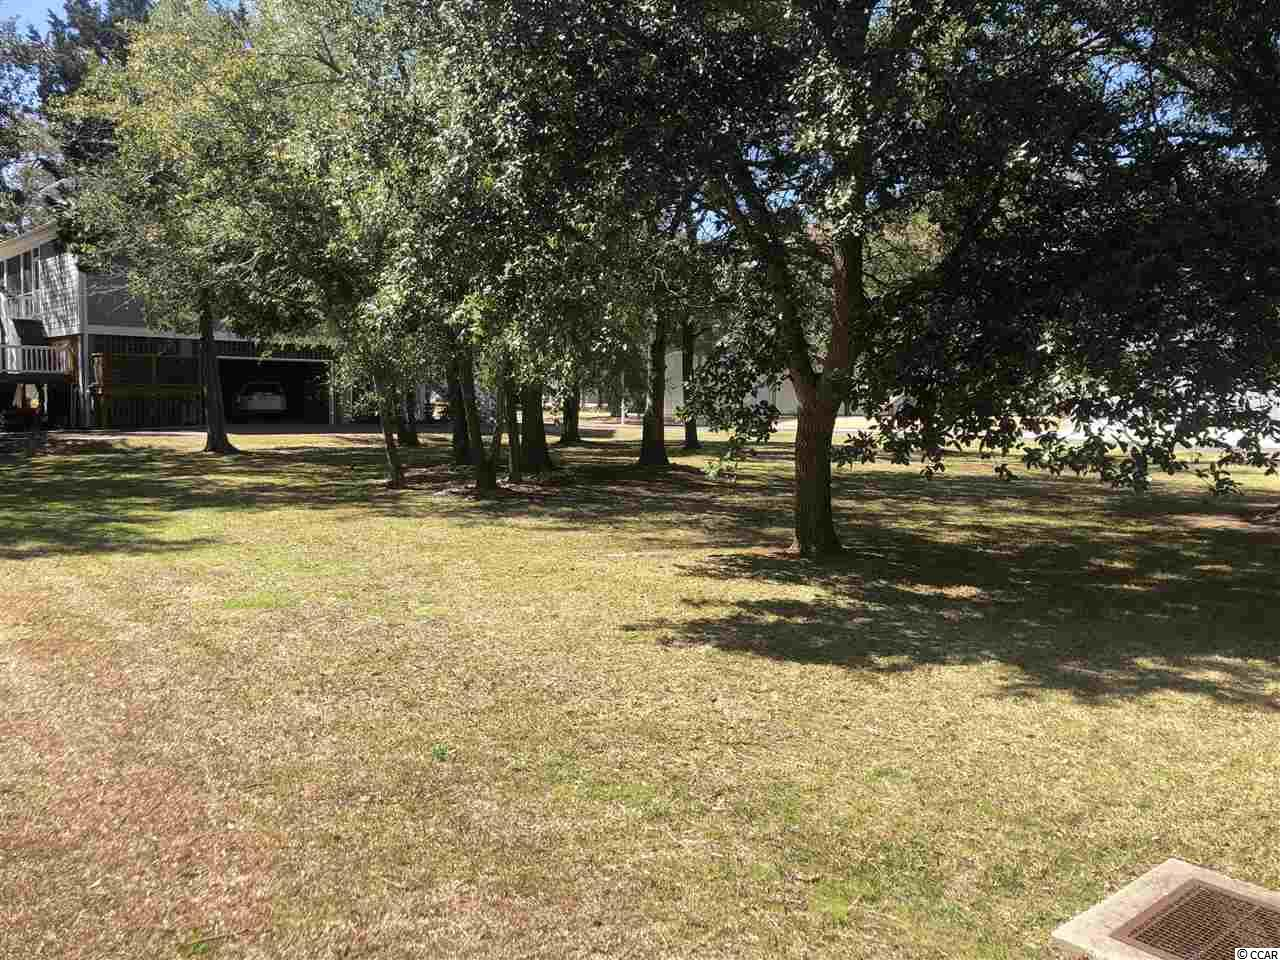 Beautifully maintained lot in the exquisite Belle Vue community. This lot is amazing and is one of the only and best priced lots available. A very short walking distance to a floating dock with a covered cabana for relaxing. Pull your boat up and swing in the amazing hammock to get the feel of this low county lifestyle or simply throw in a rod and reel and see what you can catch. Come see today why this is the place to be in Murrells Inlet, the new destination city and the Belle Vue community is the best out there. You do not want to miss this opportunity to own a slice of paradise.